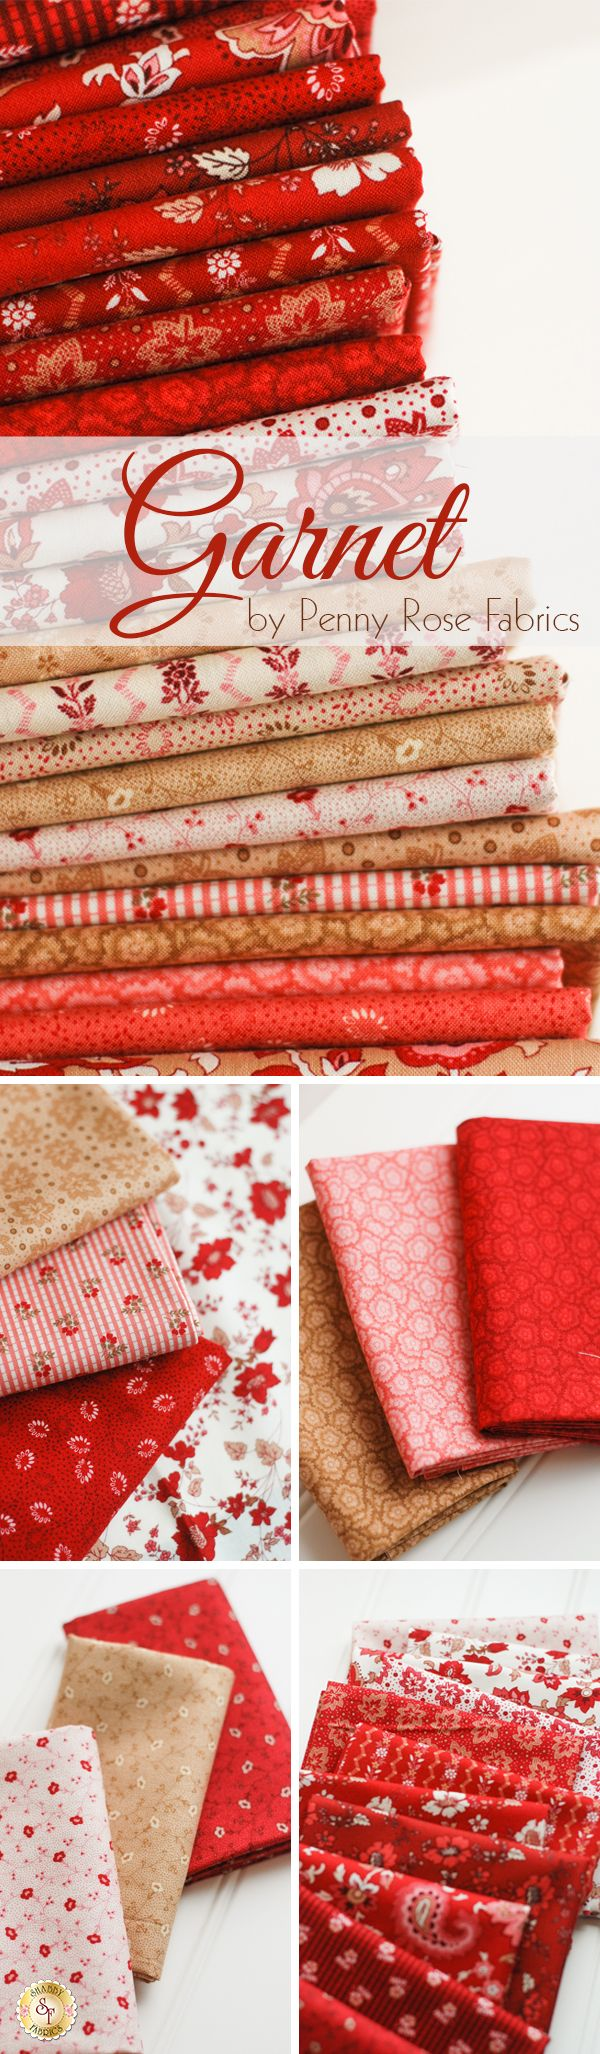 Garnet by Nancy Zieman for Penny Rose Fabrics is a beautiful fabric collection available at Shabby Fabrics